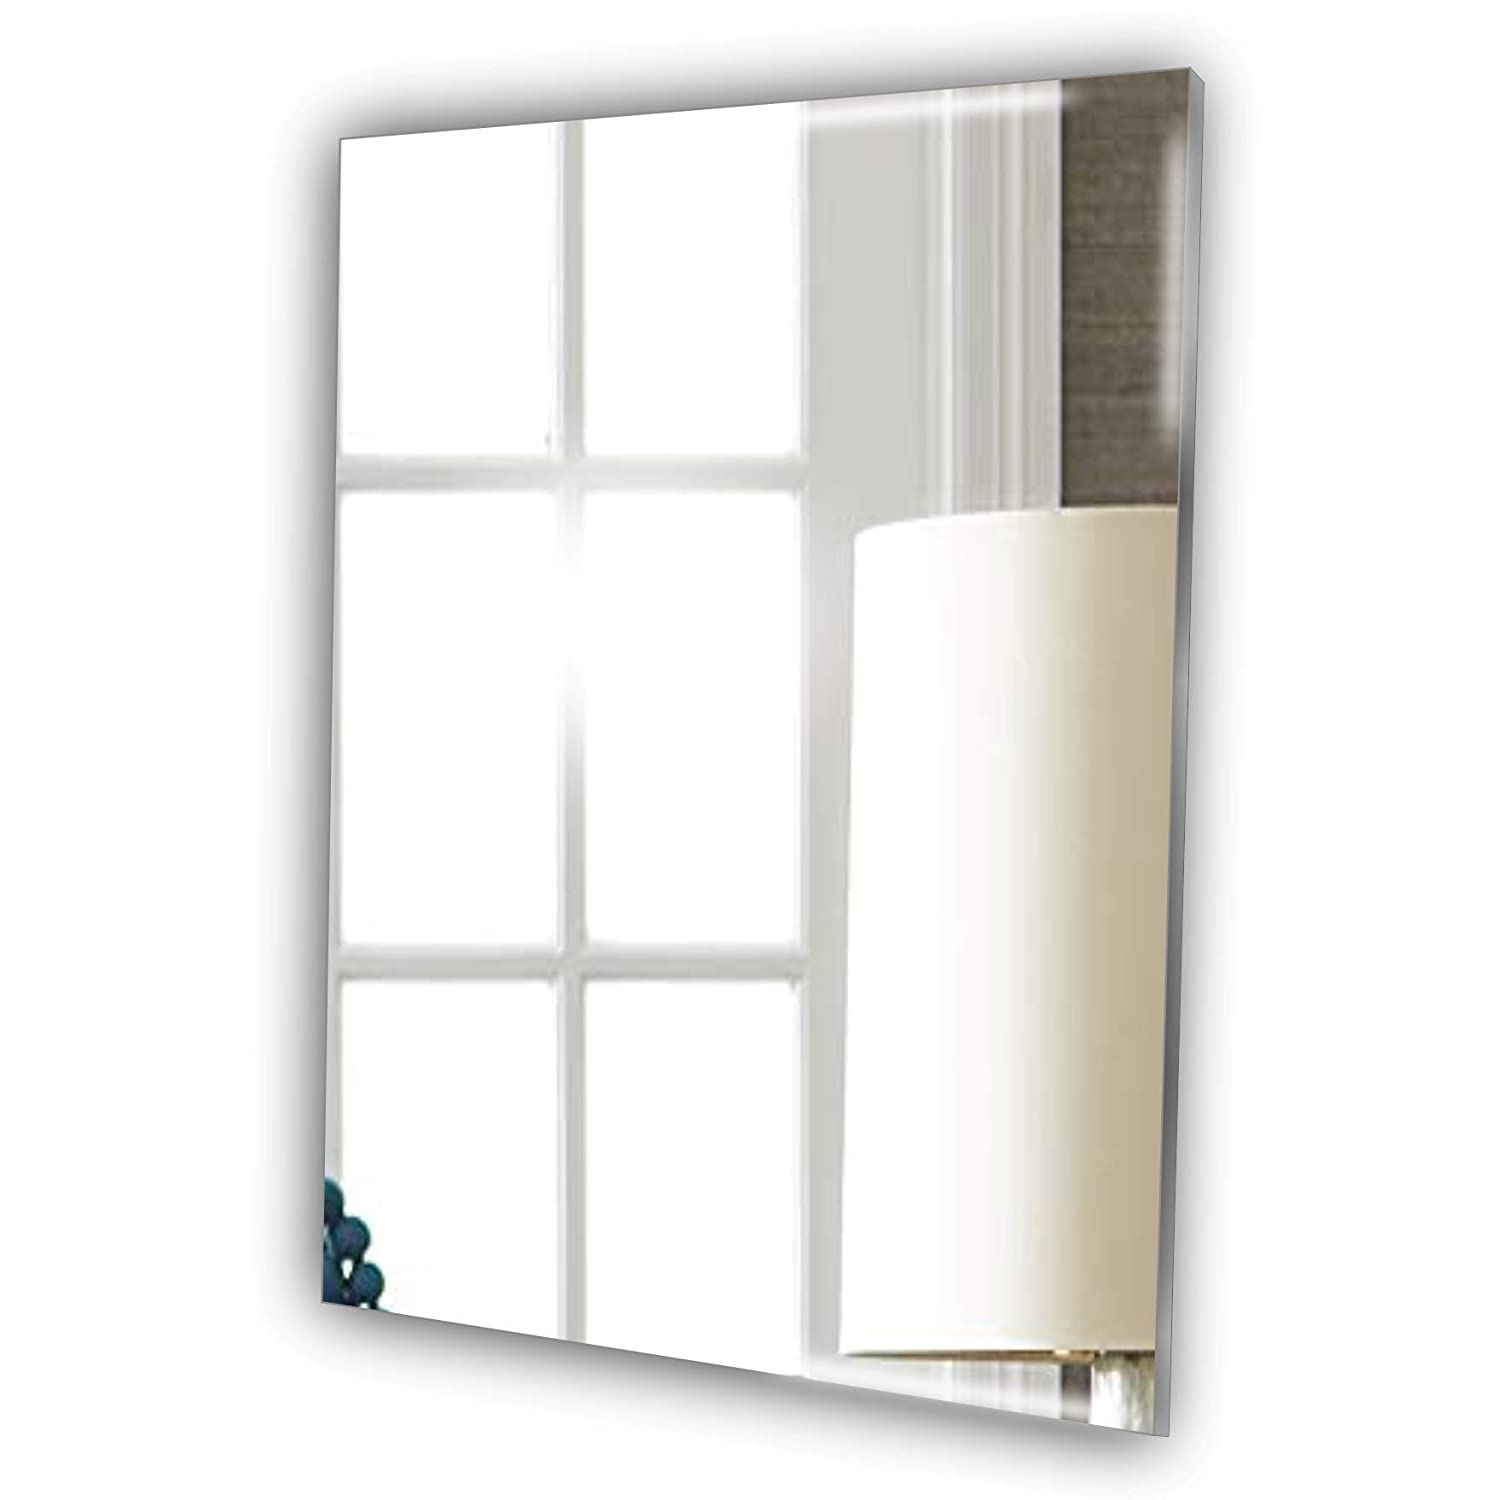 Frameless Rectangle Mirror * Ideal For Shaving - No DIY No Nail Needed - Complete Kit - Bedroom - Living Room - Hallway - Any Room Mirrors-Interiors